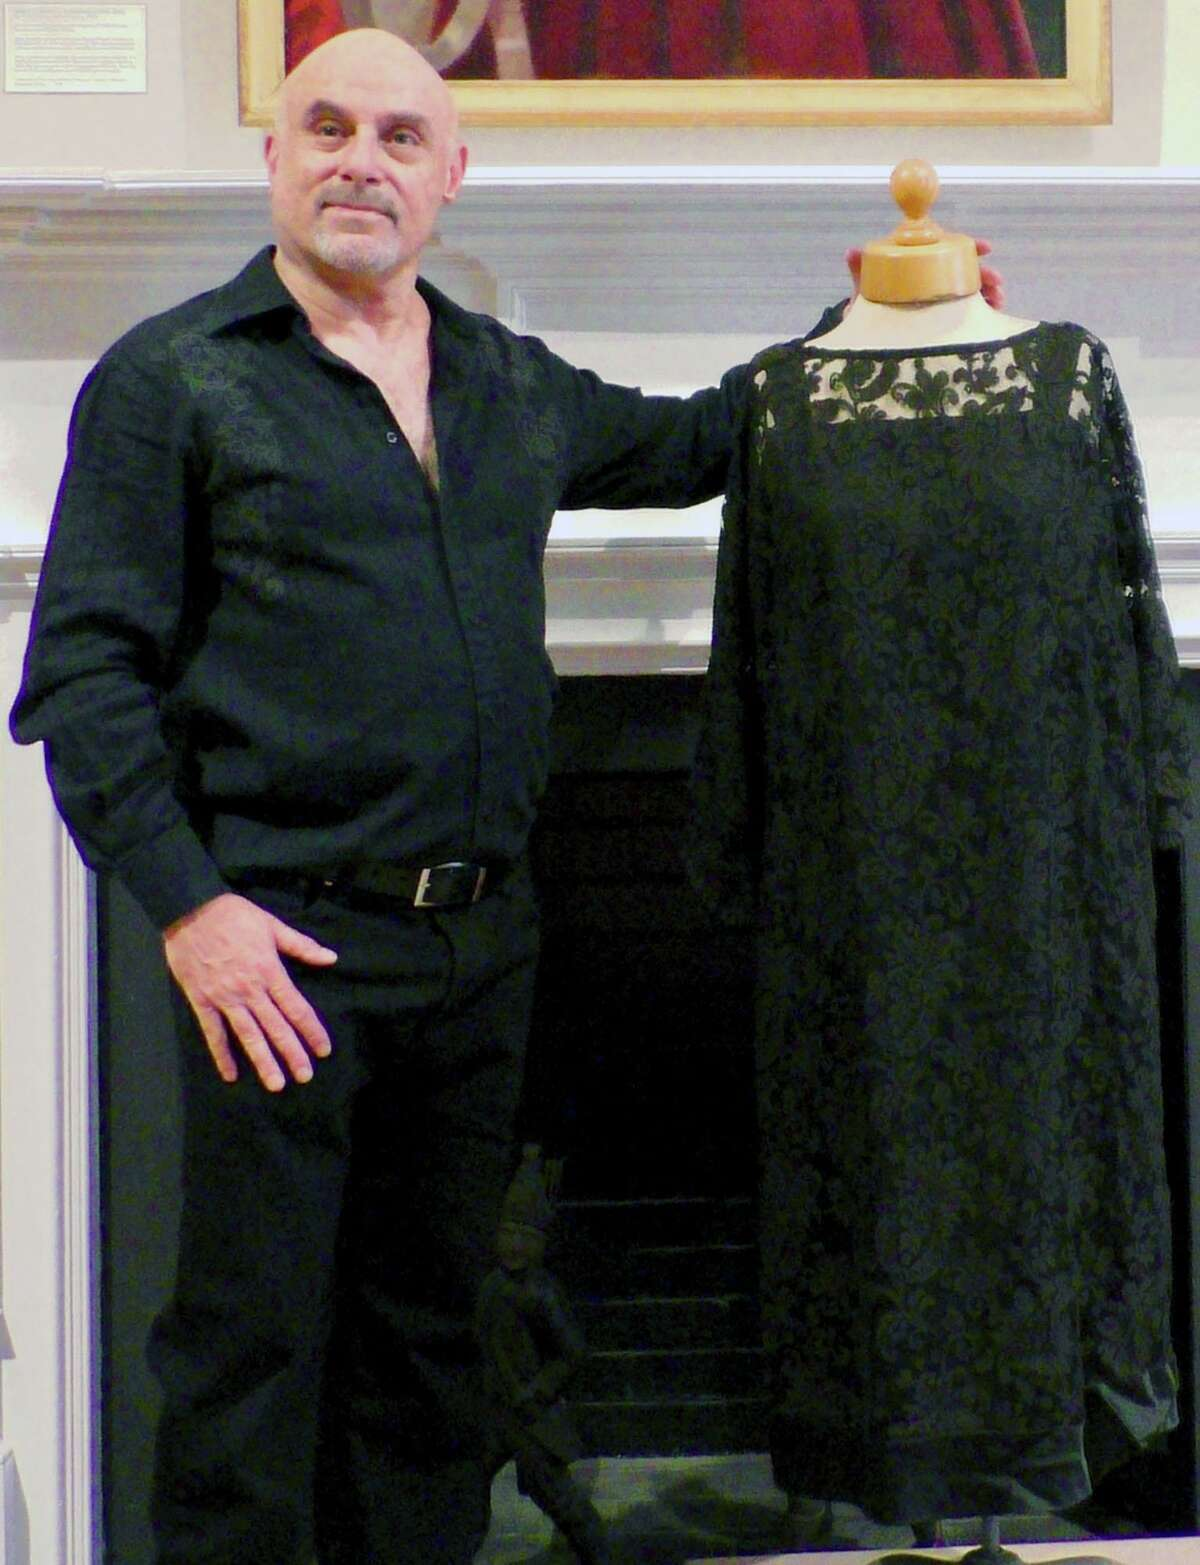 Local author Ron Suresha, above, will offer a Sept. 26 talk on the Cat Woman of Gaylordsville and her Victorian murder scandal to coincide with the opening of the New Milford Historical Society & Museum's